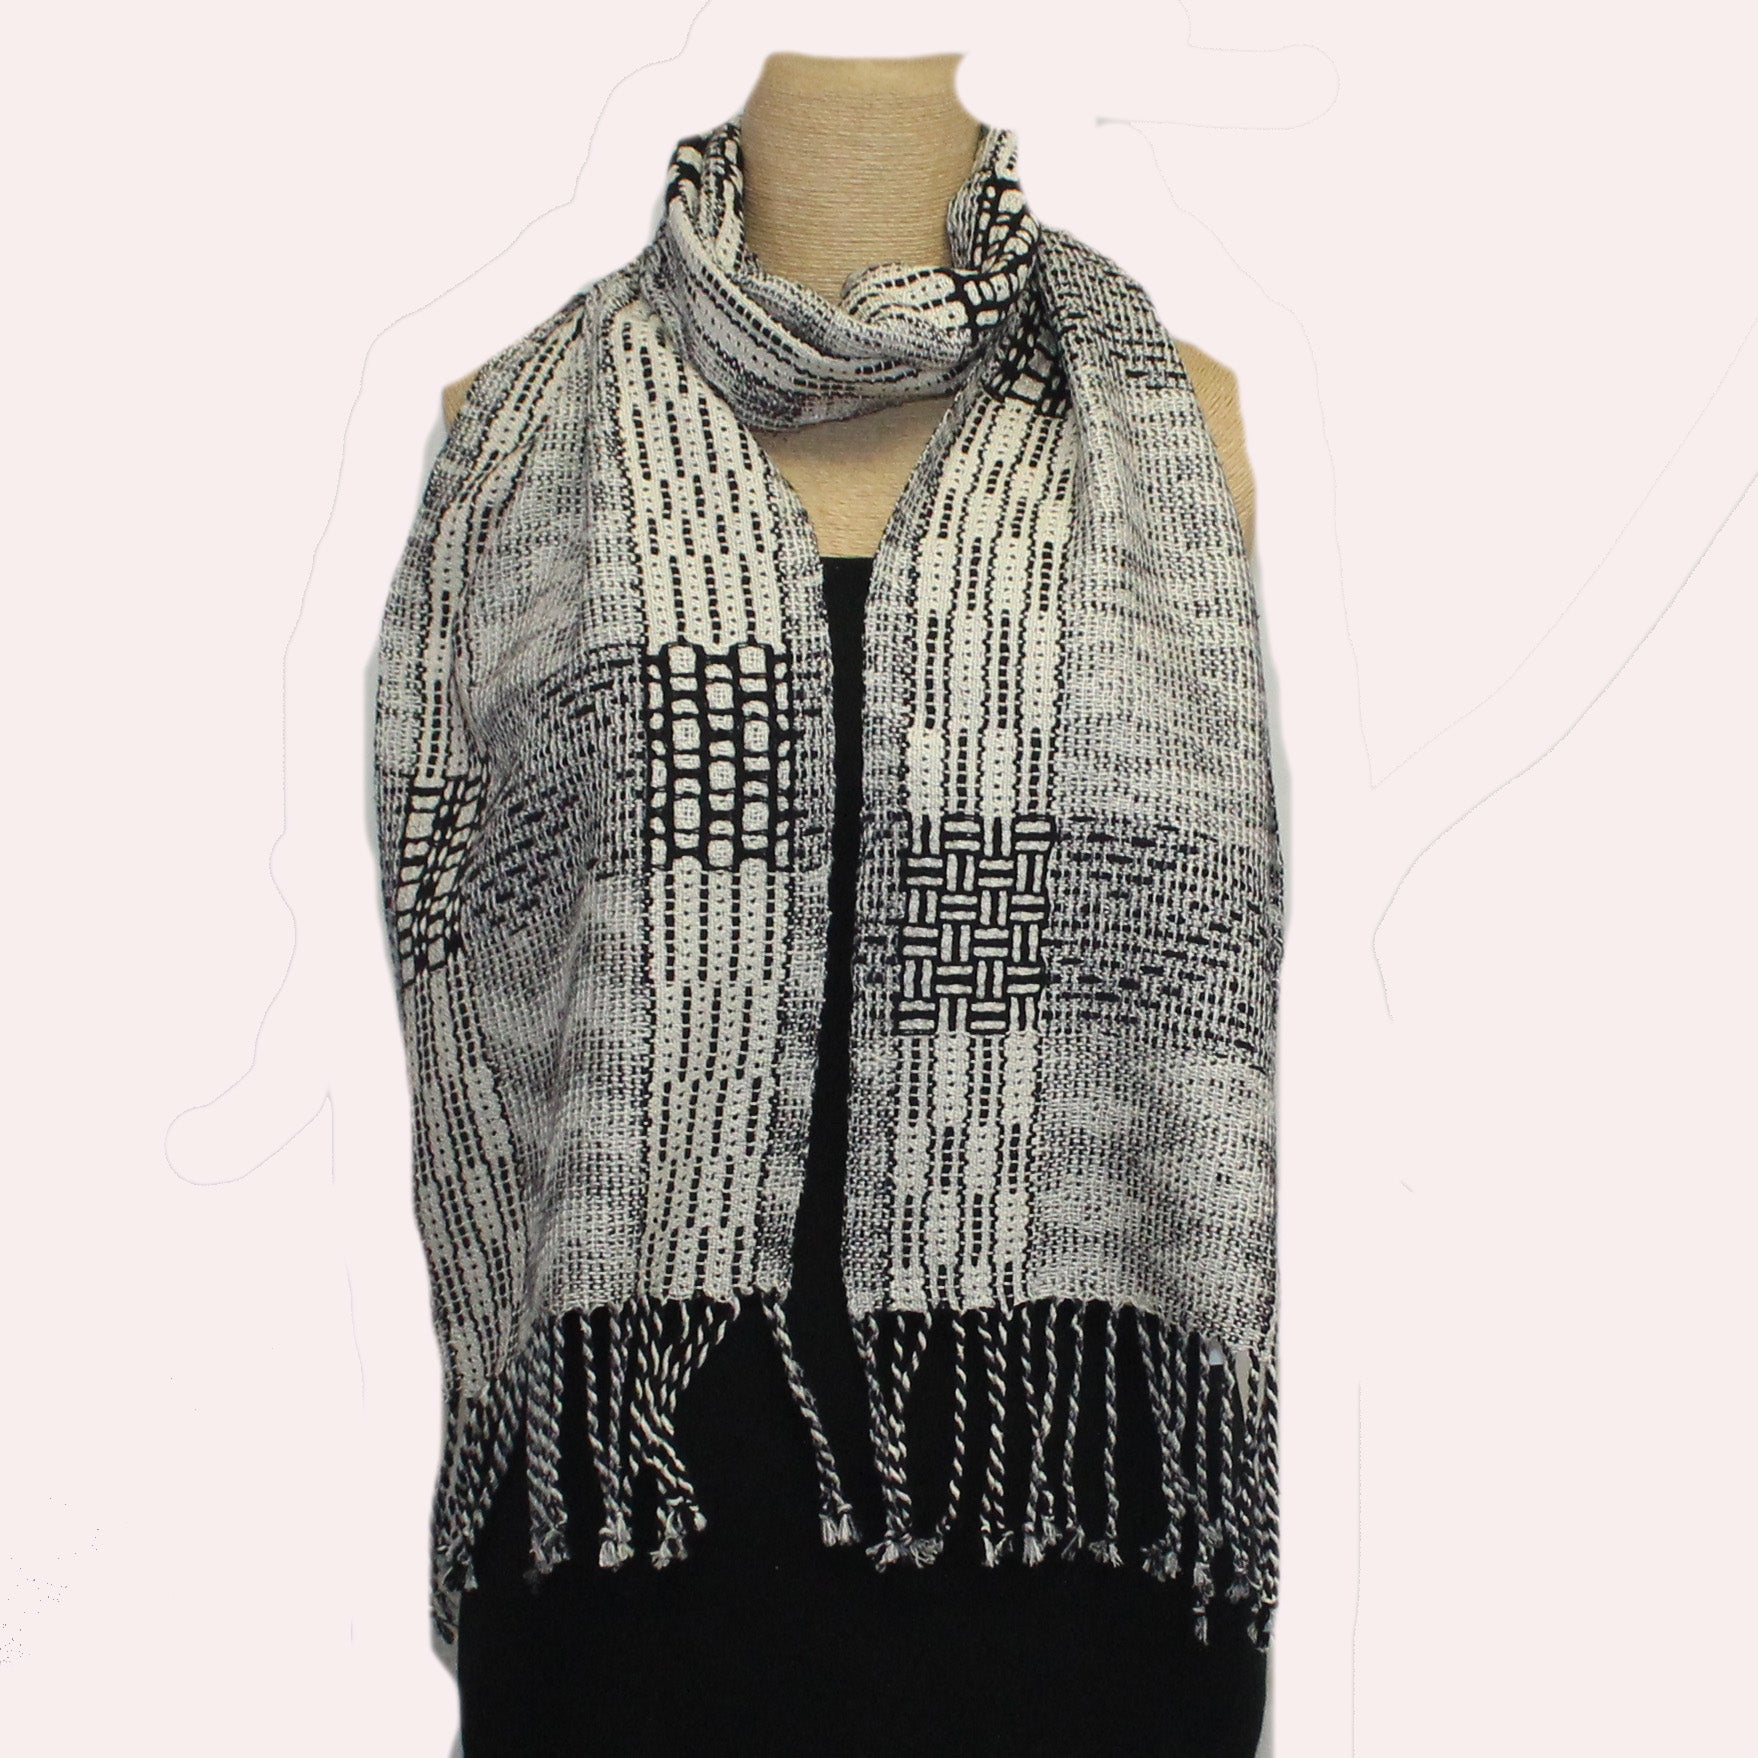 Muffy Young Scarf, Blocks & Echo, Black/White/Grey